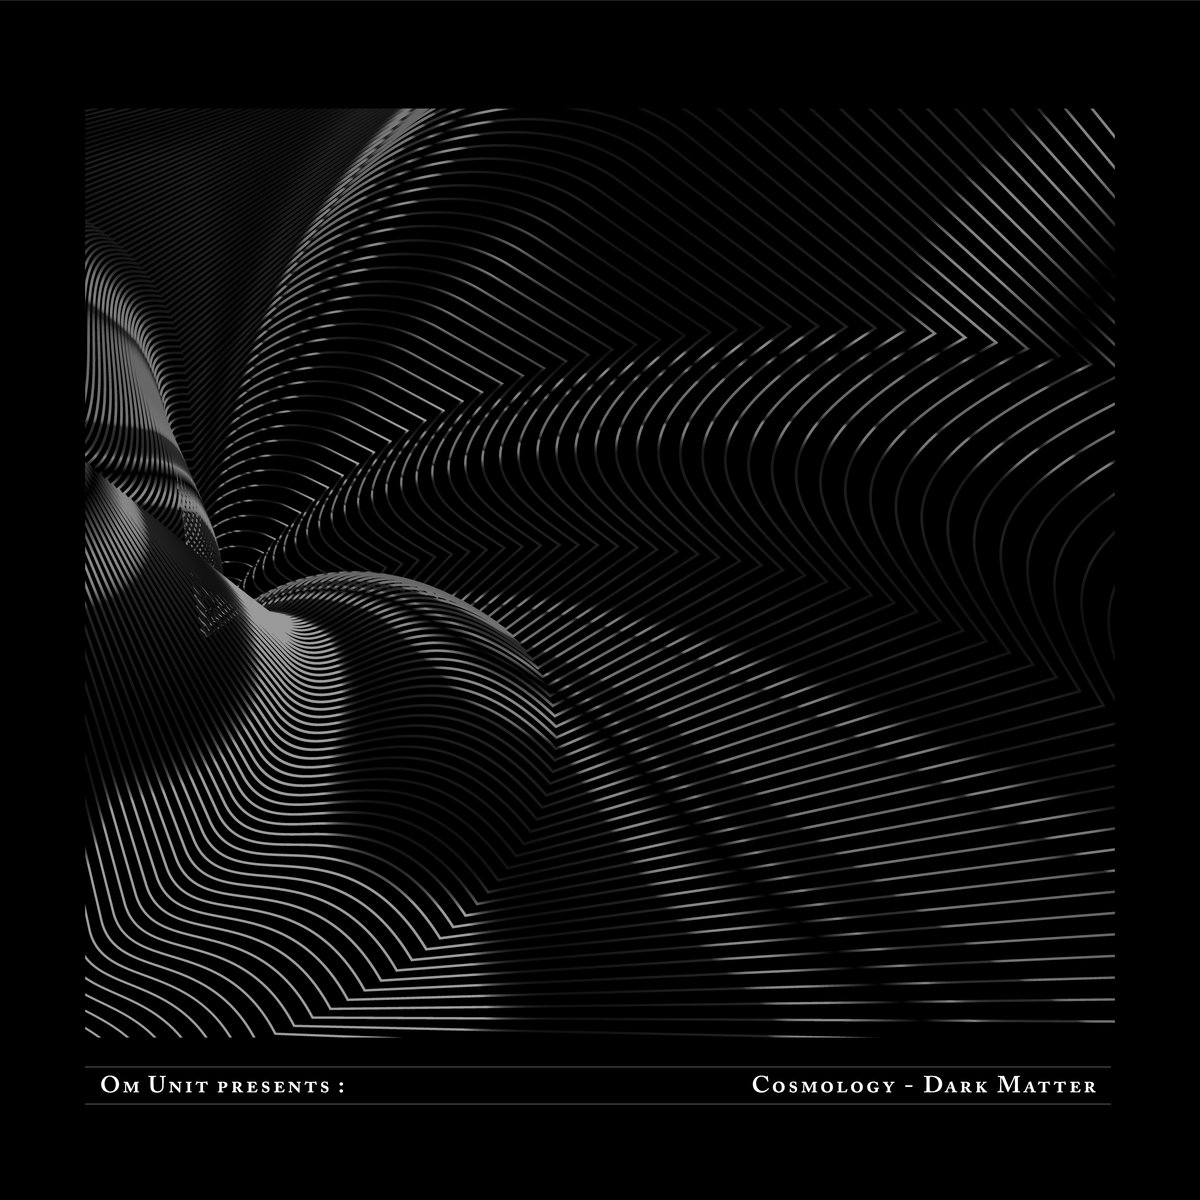 Om Unit Presents: Cosmology - Dark Matter